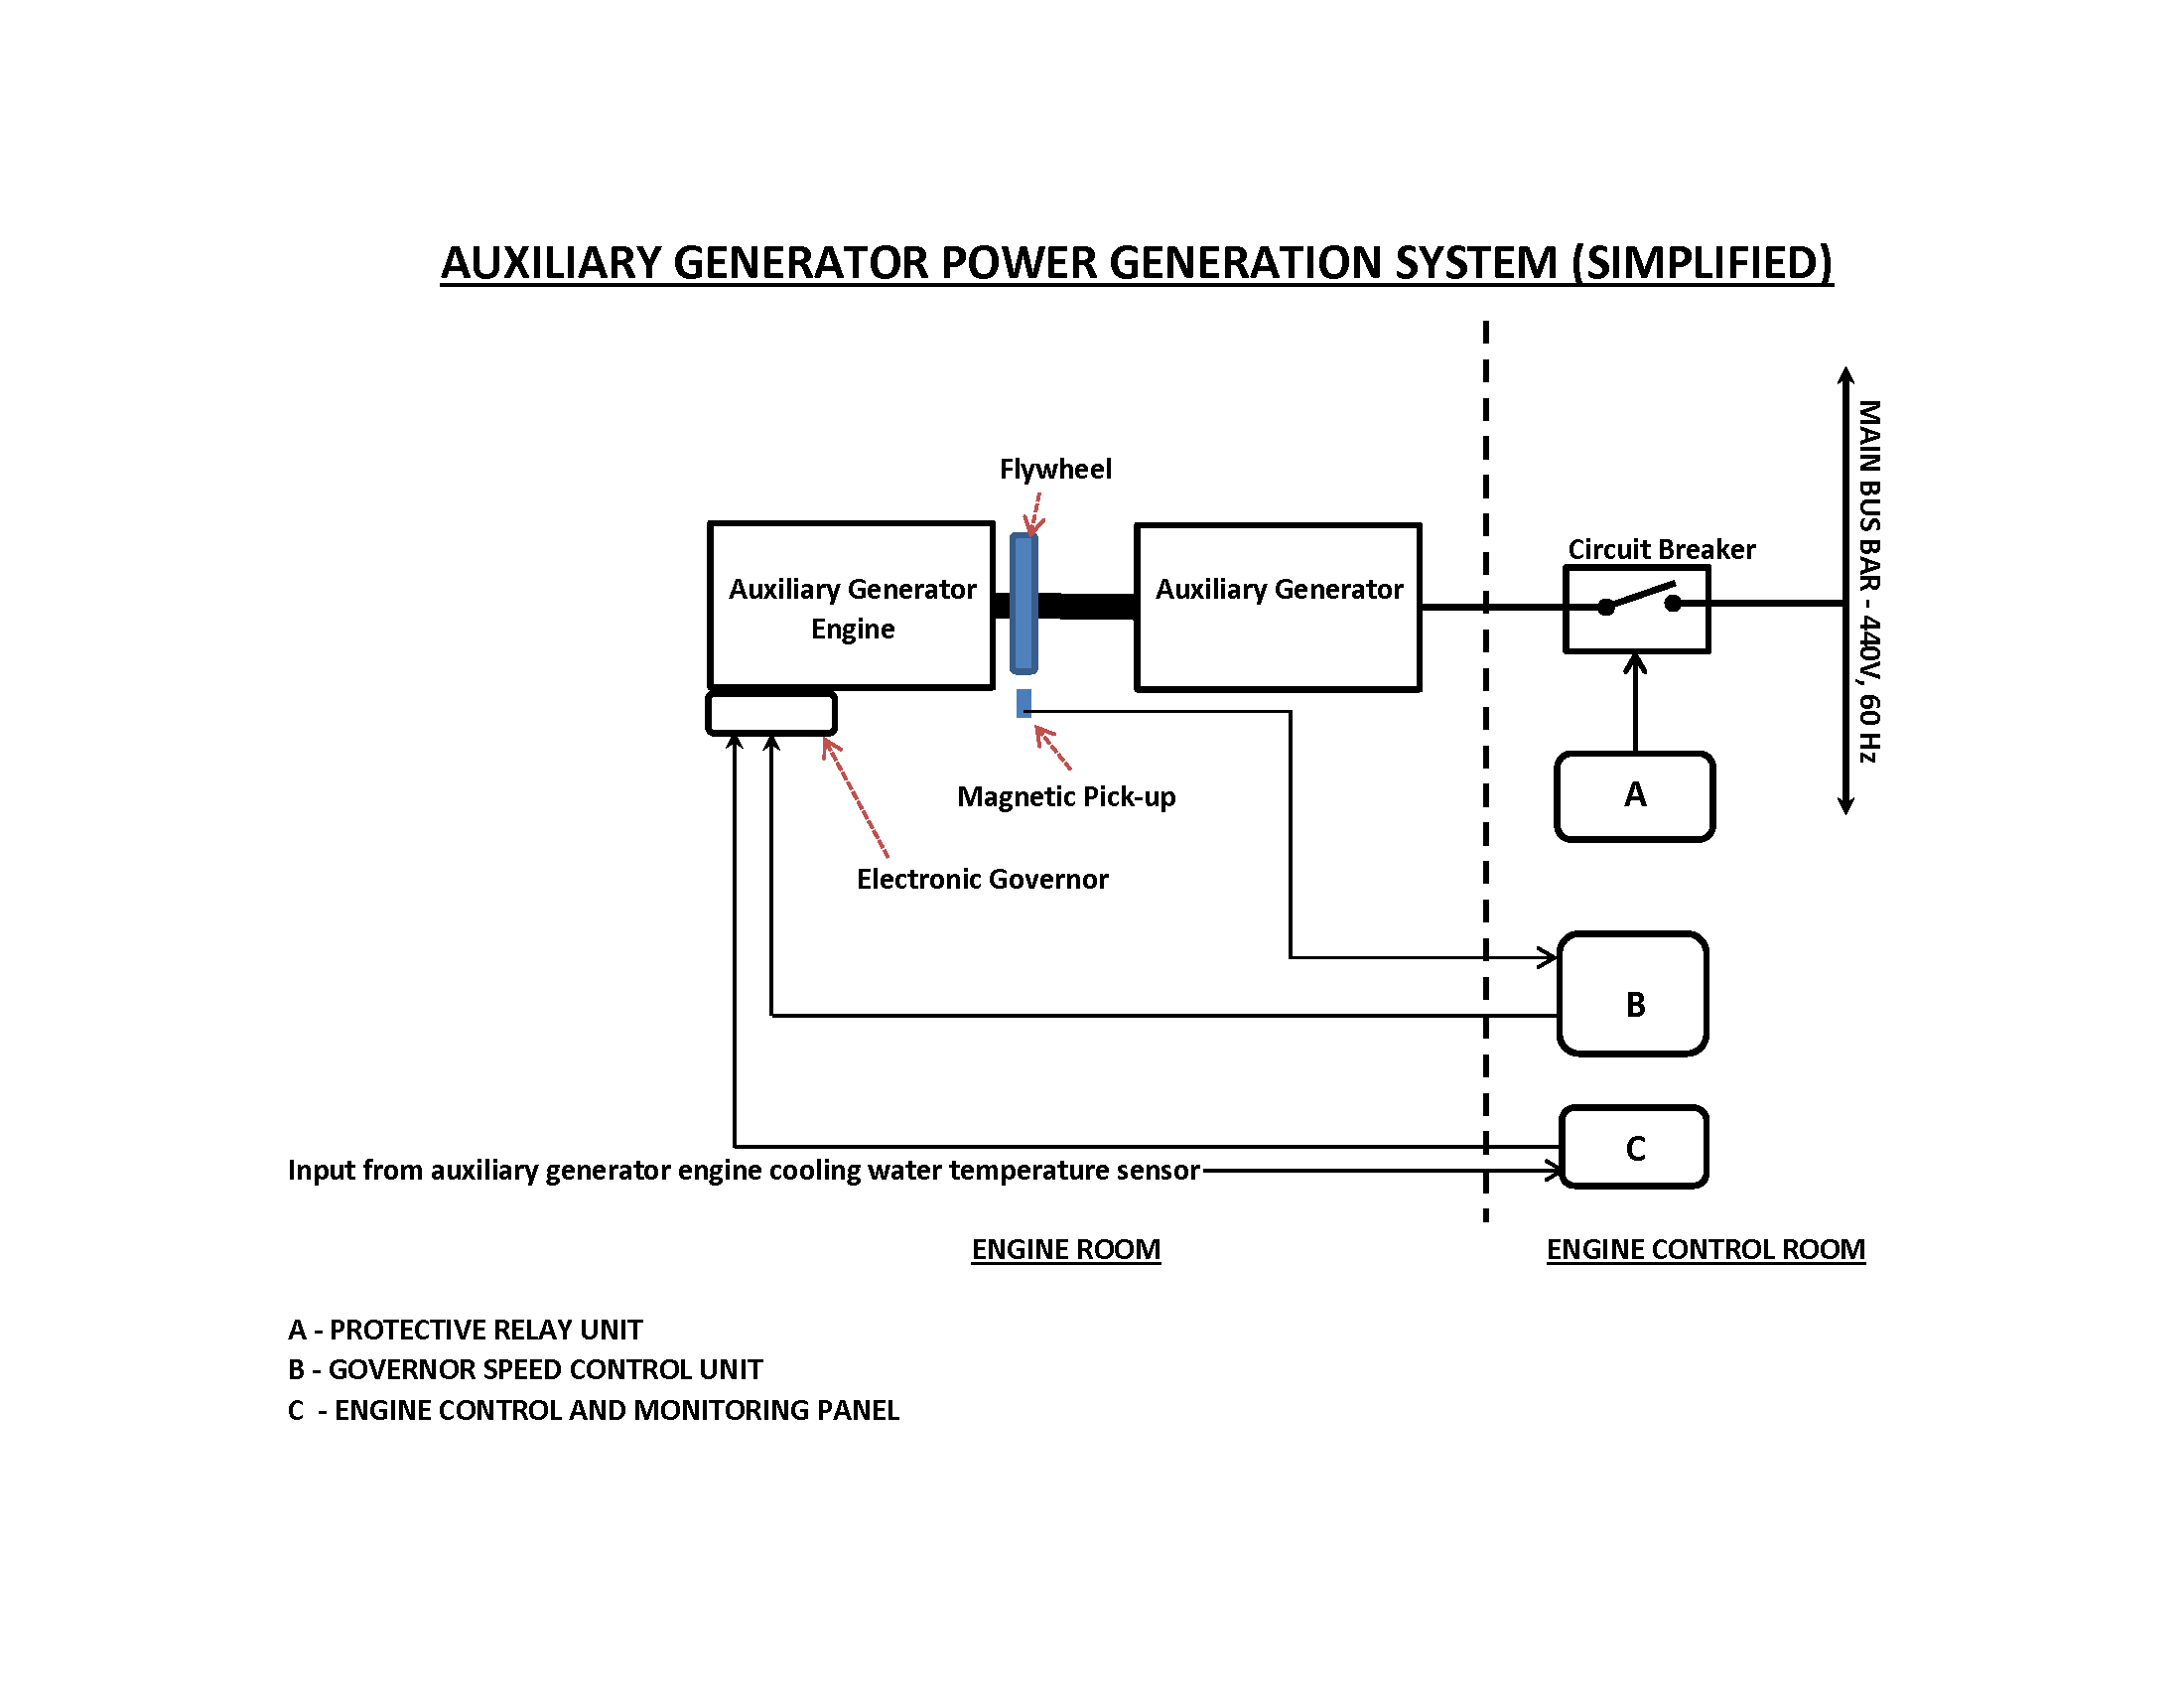 Transportation Safety Board Of Canada Marine Investigation Report How To Build Whistle Responder Circuit Diagram Main Power Generation